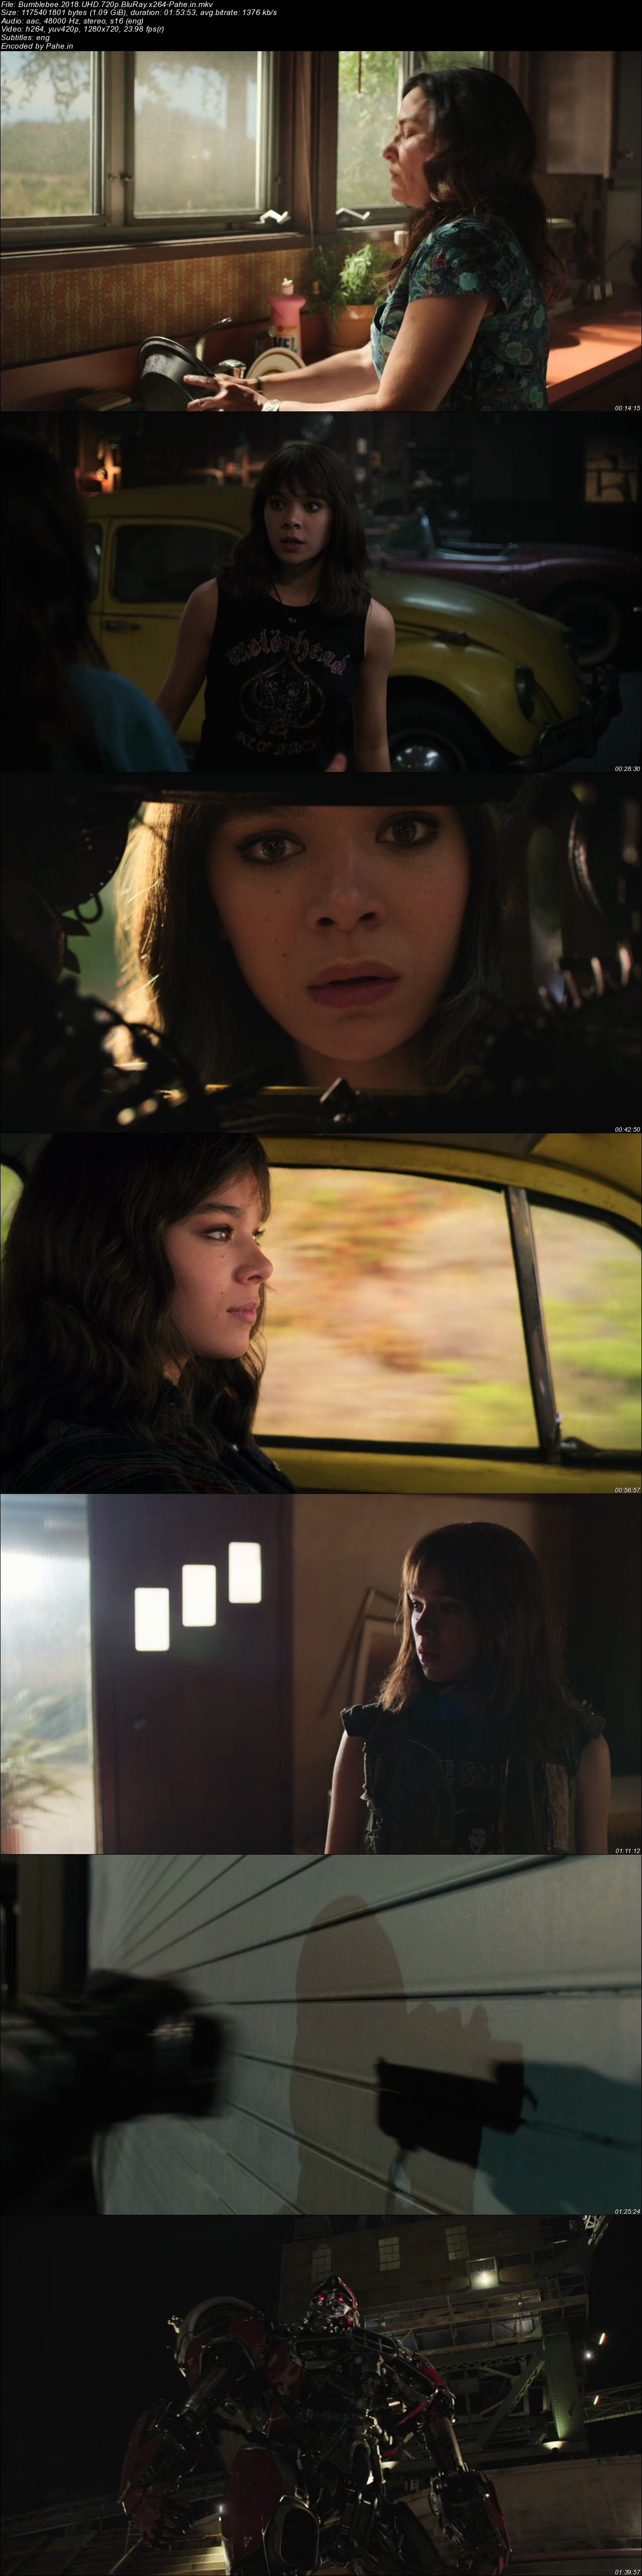 Index of Bumblebee | Hollywood Movies in 2019 | Beach town, Movies